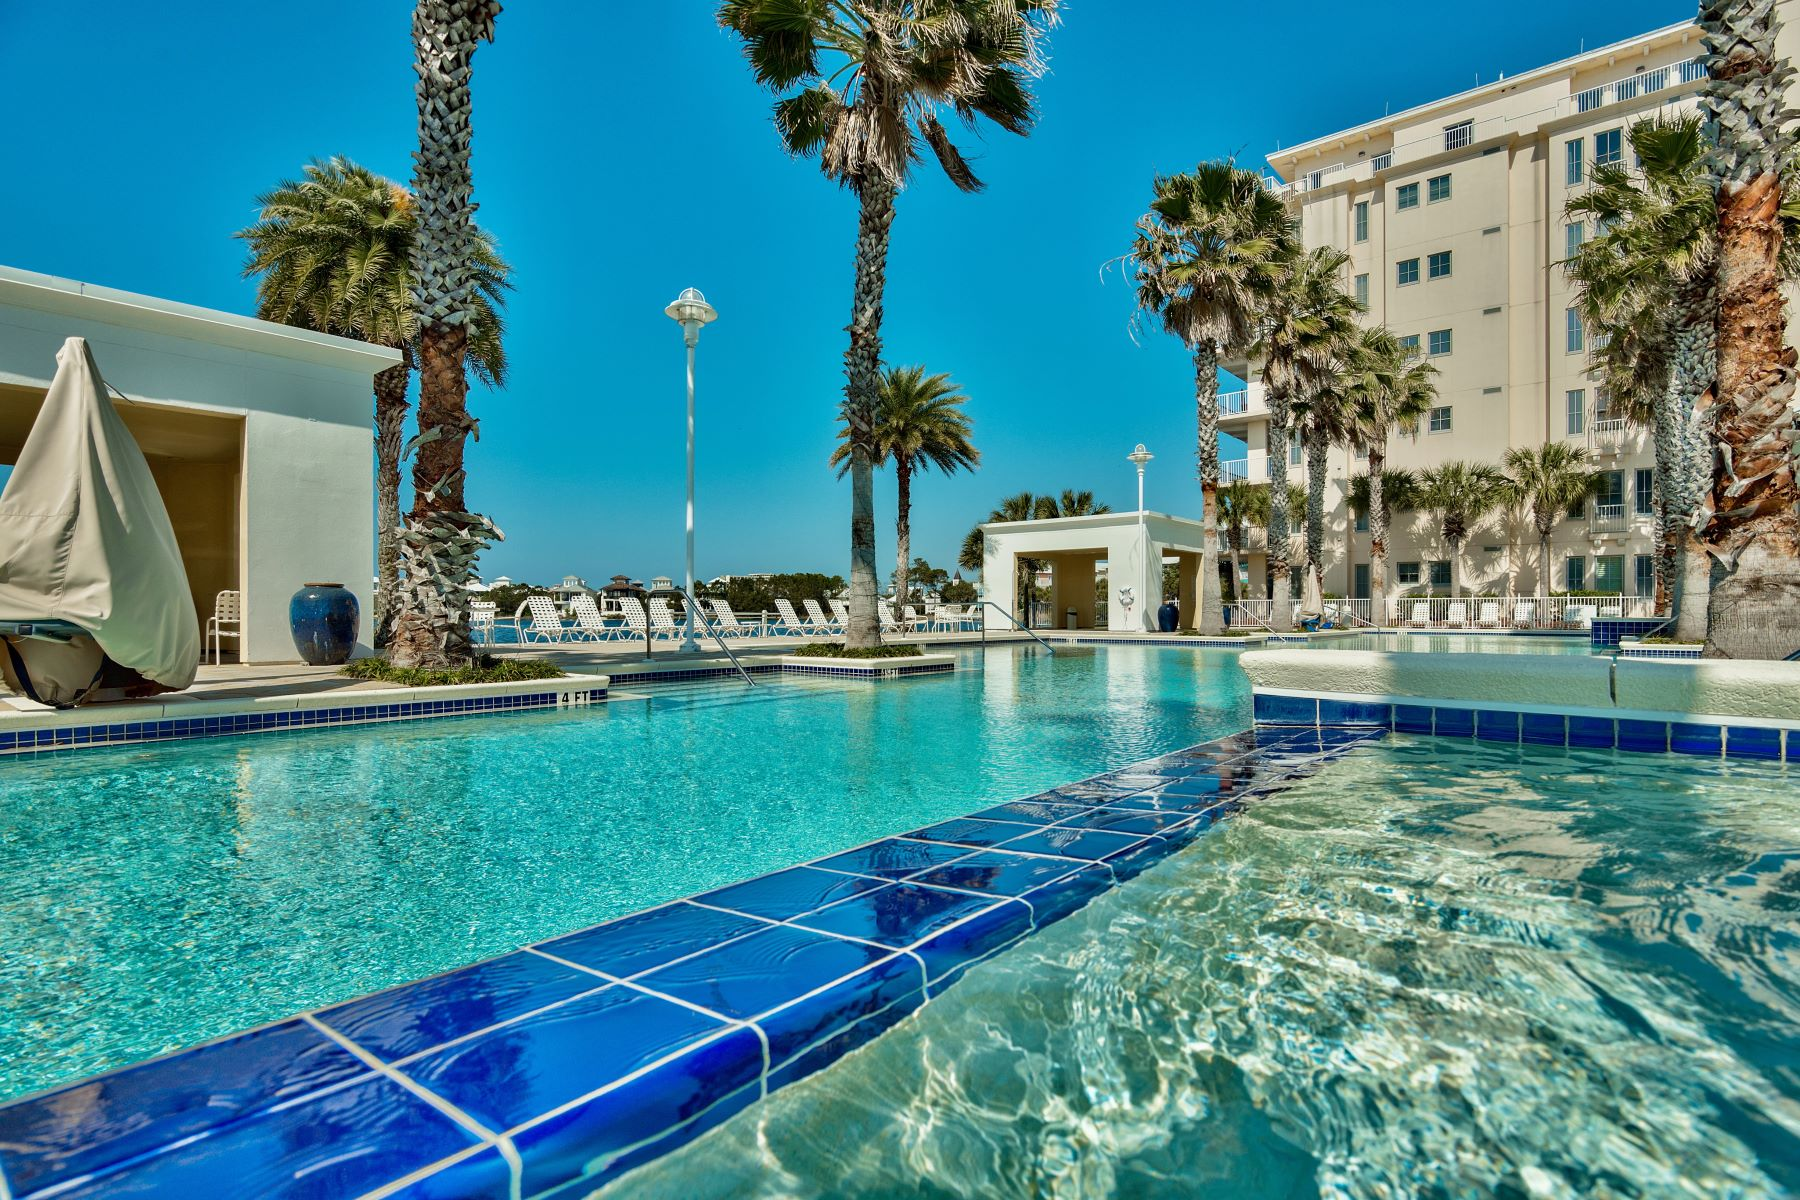 condominiums for Sale at Carillon Beach Condo with Large Patio and Full Kitchen 111 Carillon Market Street 302 Panama City Beach, Florida 32413 United States